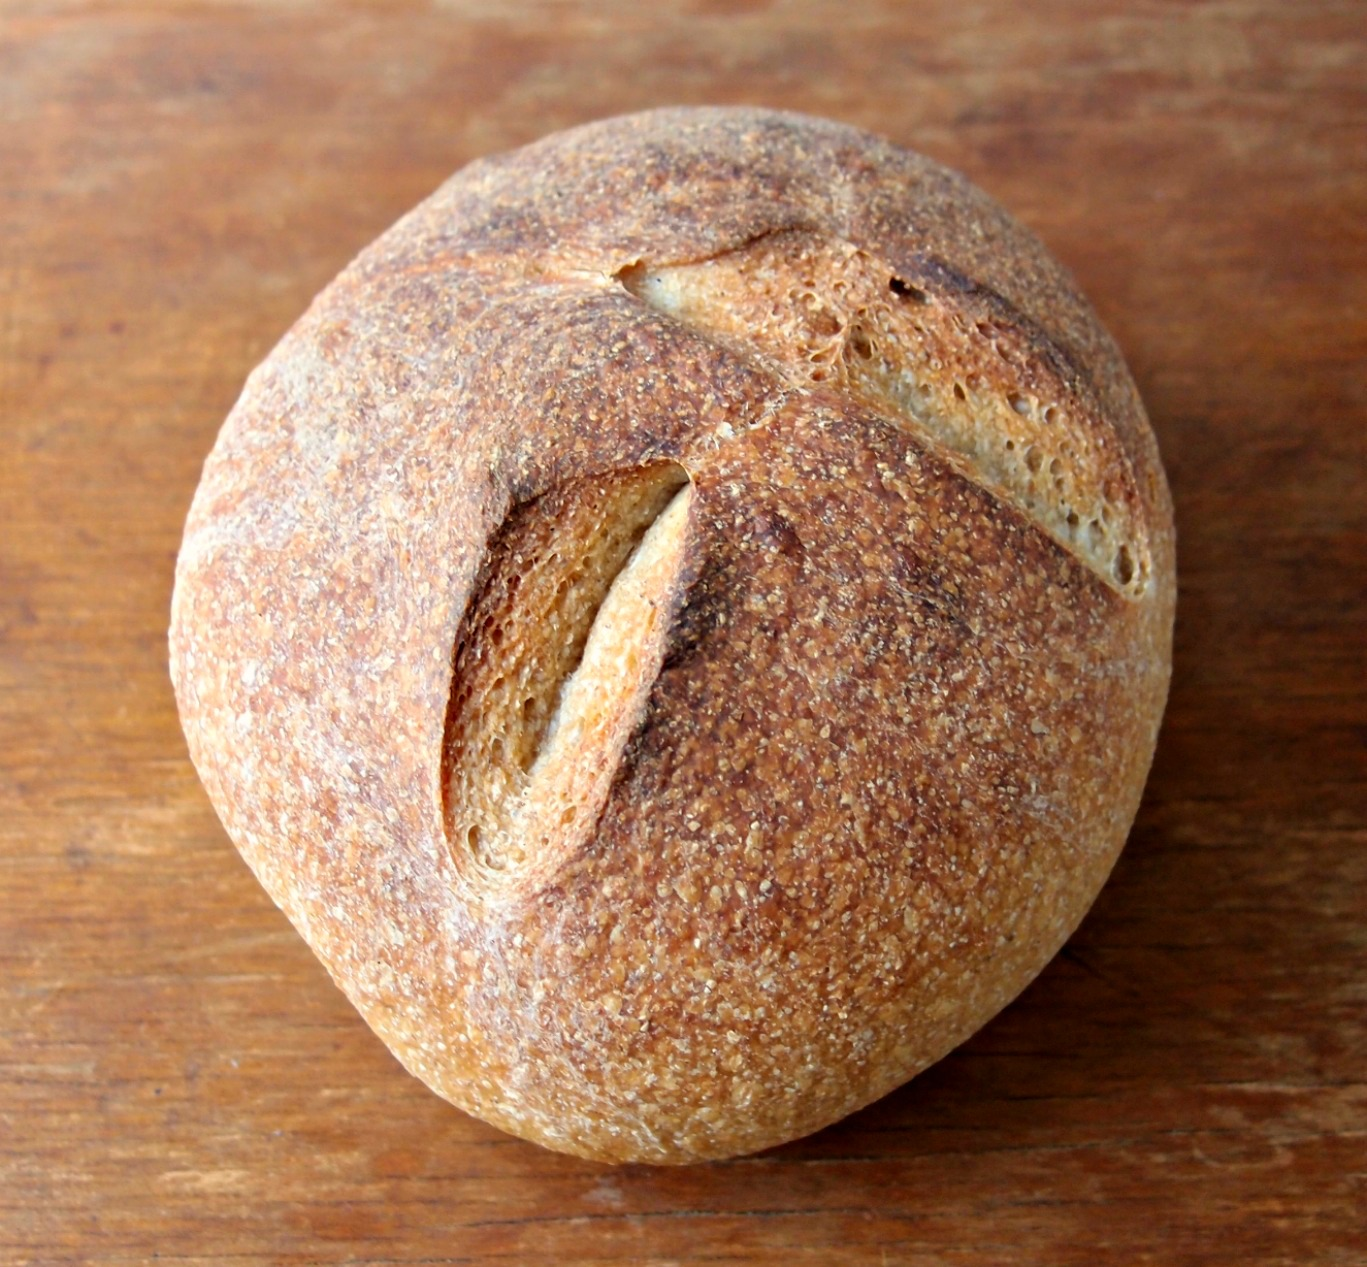 No Baker S Yeast No Sugar No Raising Agents Other Than The Sourdough Starter No Emulsifiers No Bread Improvers Just Flour